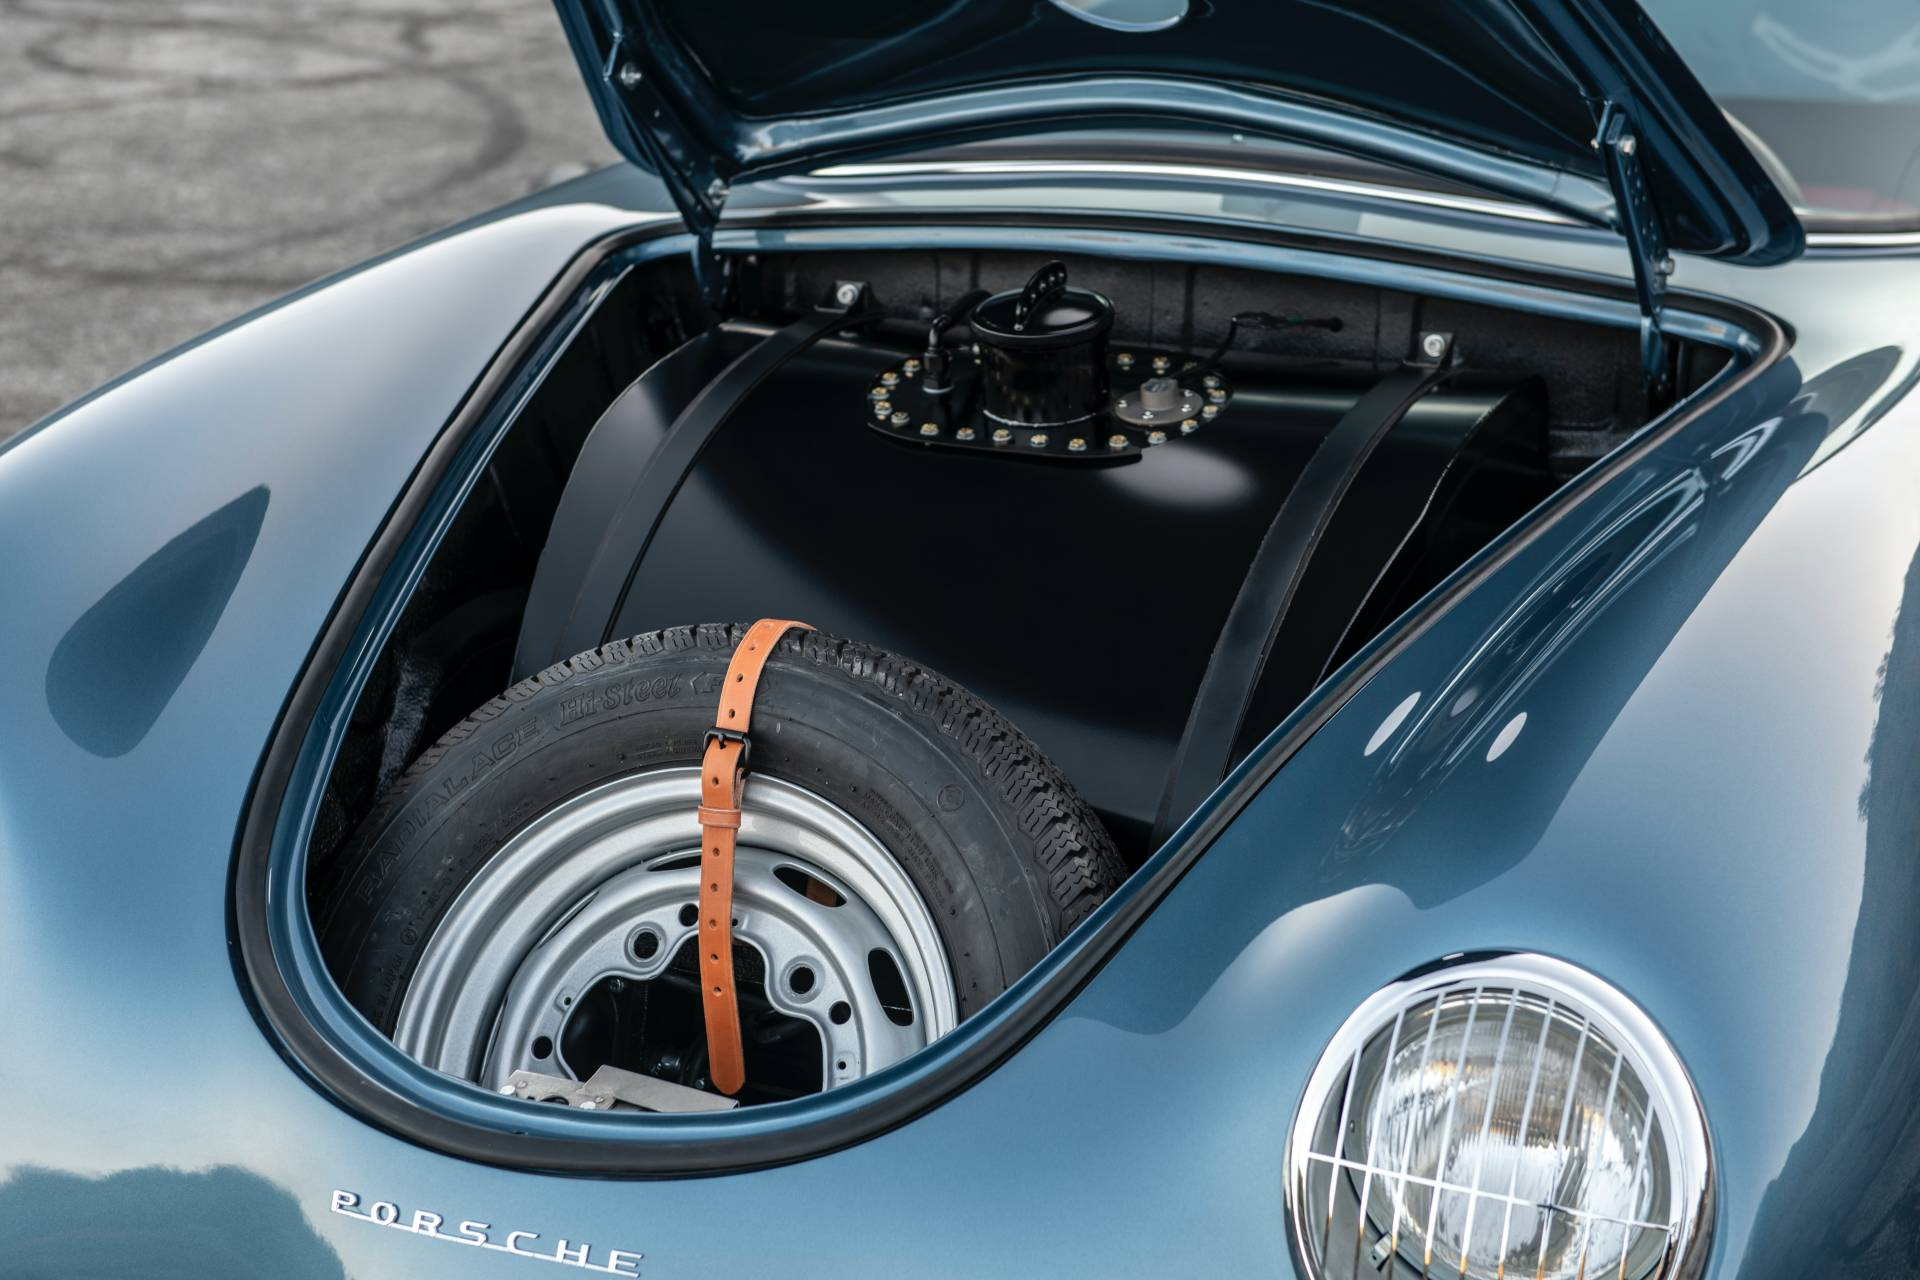 Porsche-356-Speedster-1959-Aquamarine-Transitional-By-Emory-Motorsport-20